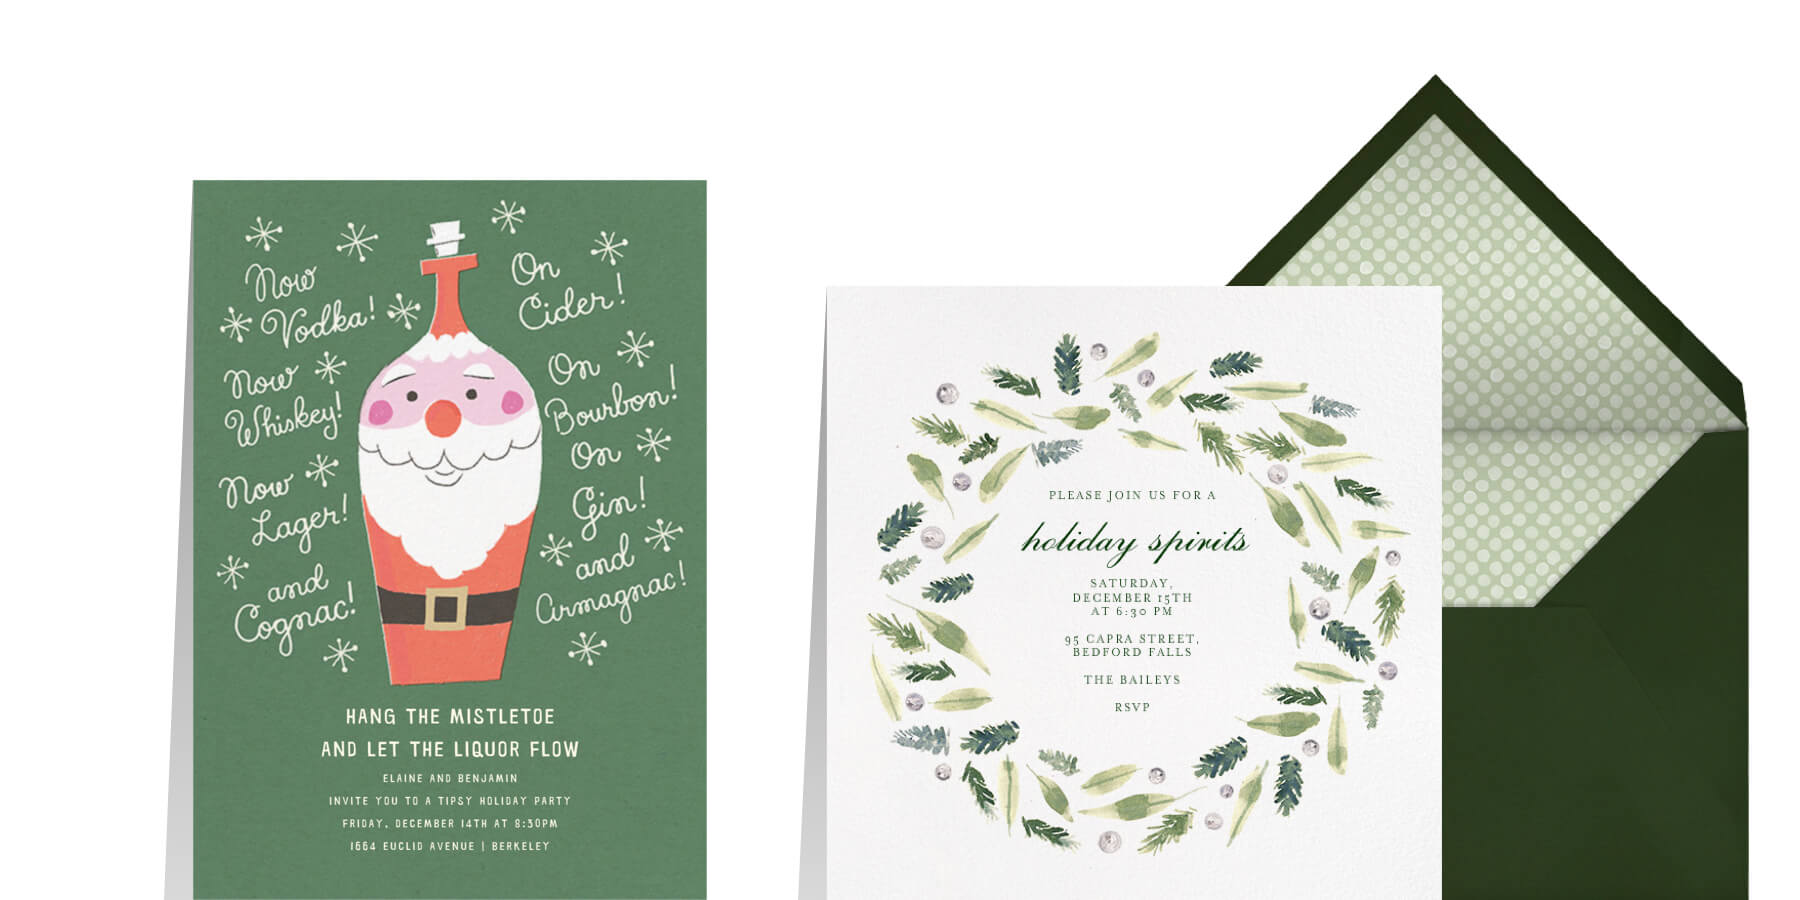 holiday cocktail party ideas from Paperless Post